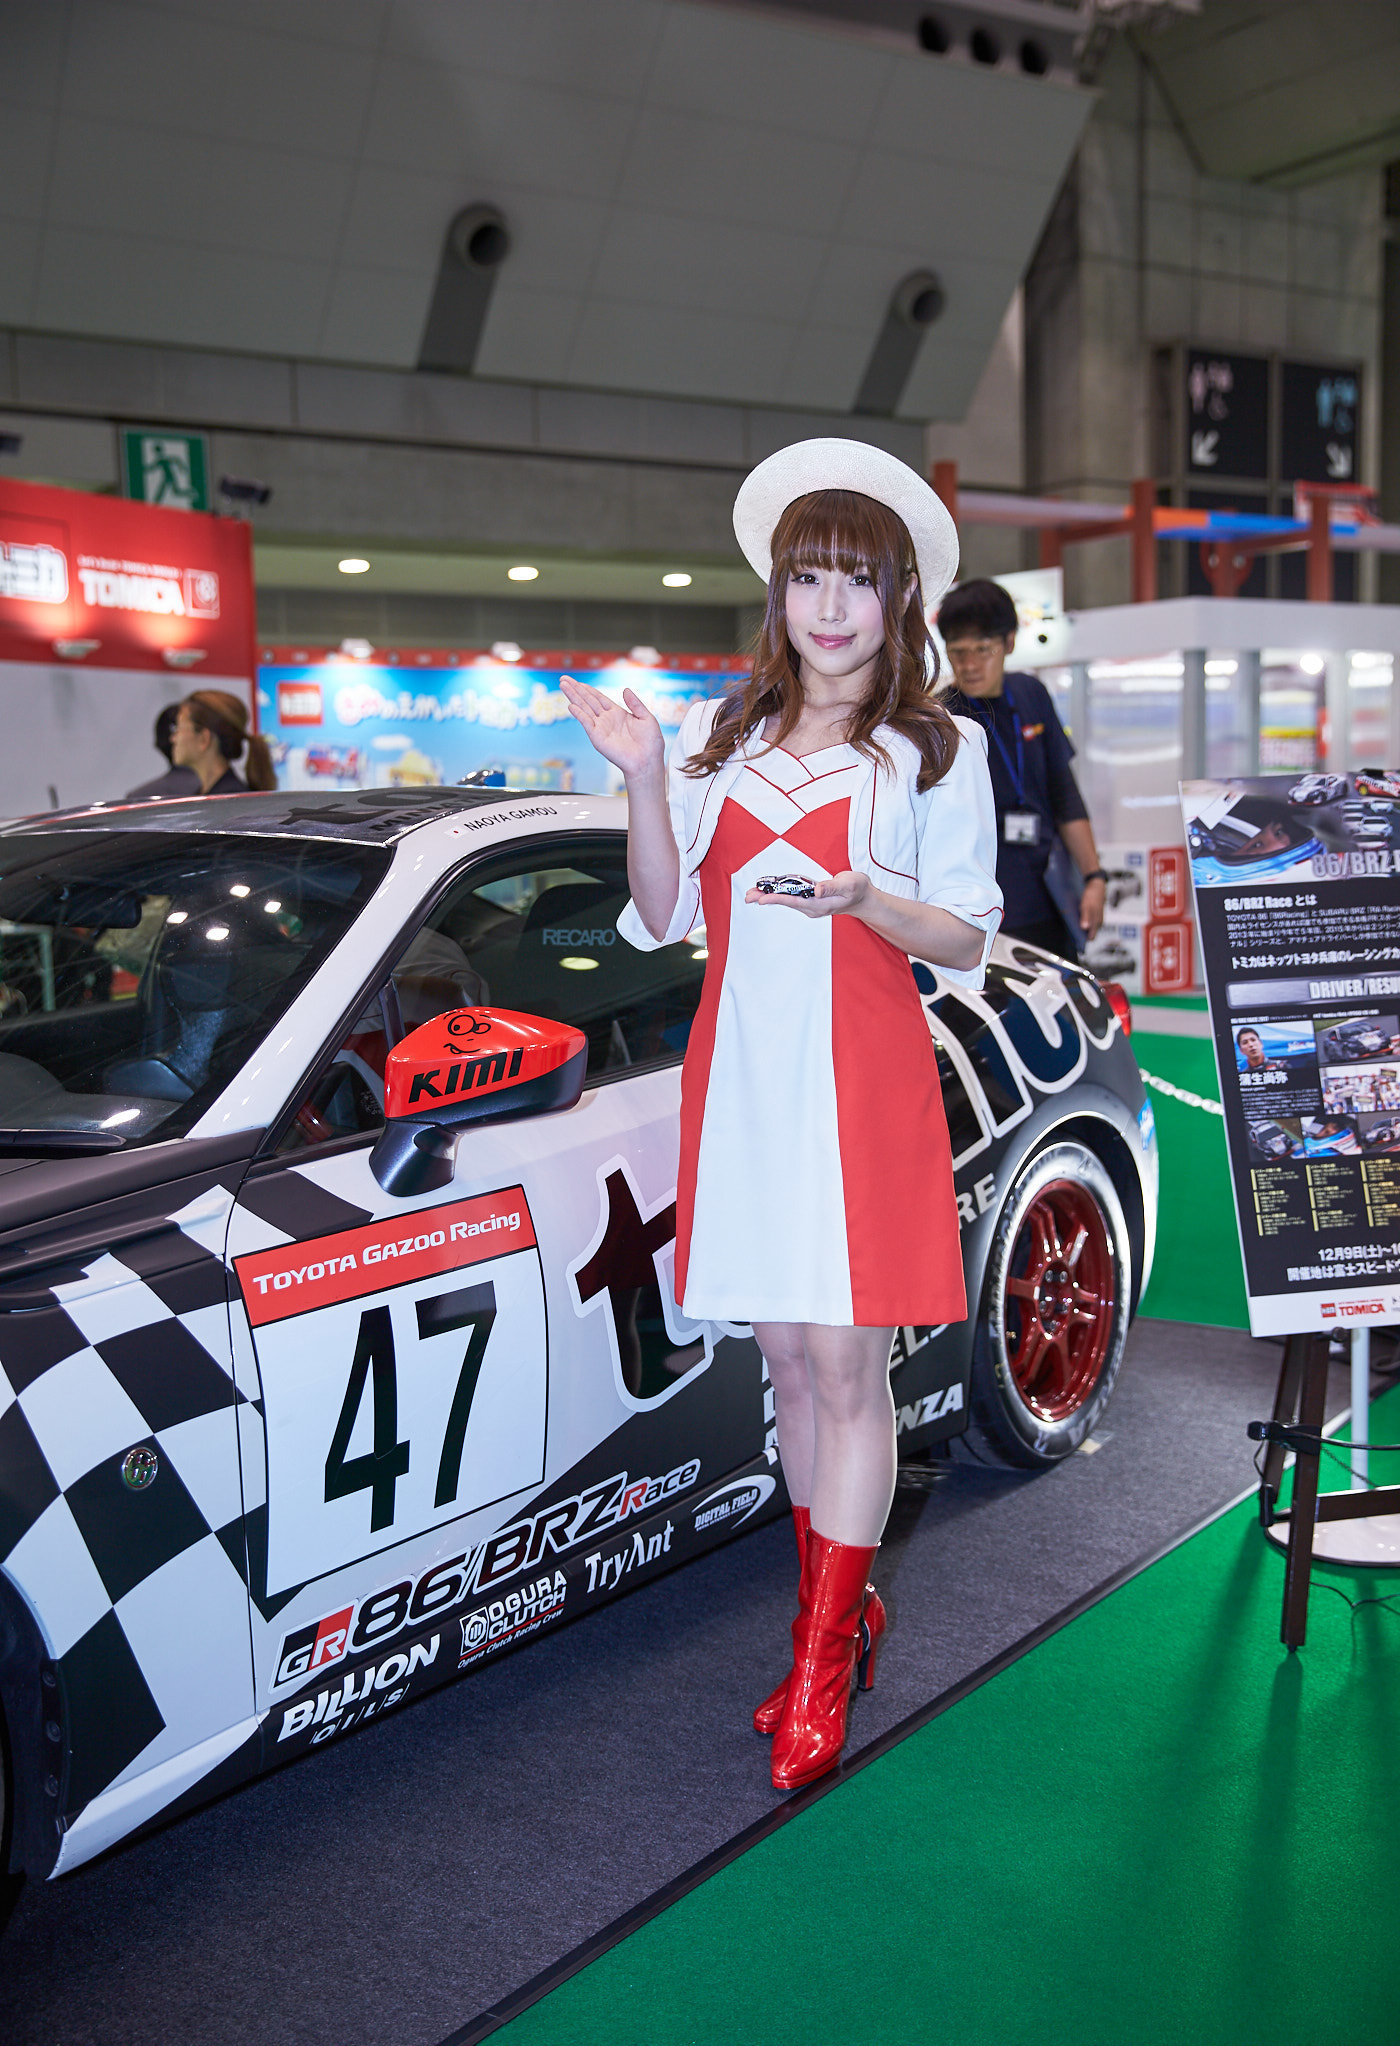 Reportage from Tokyo Motor Show!